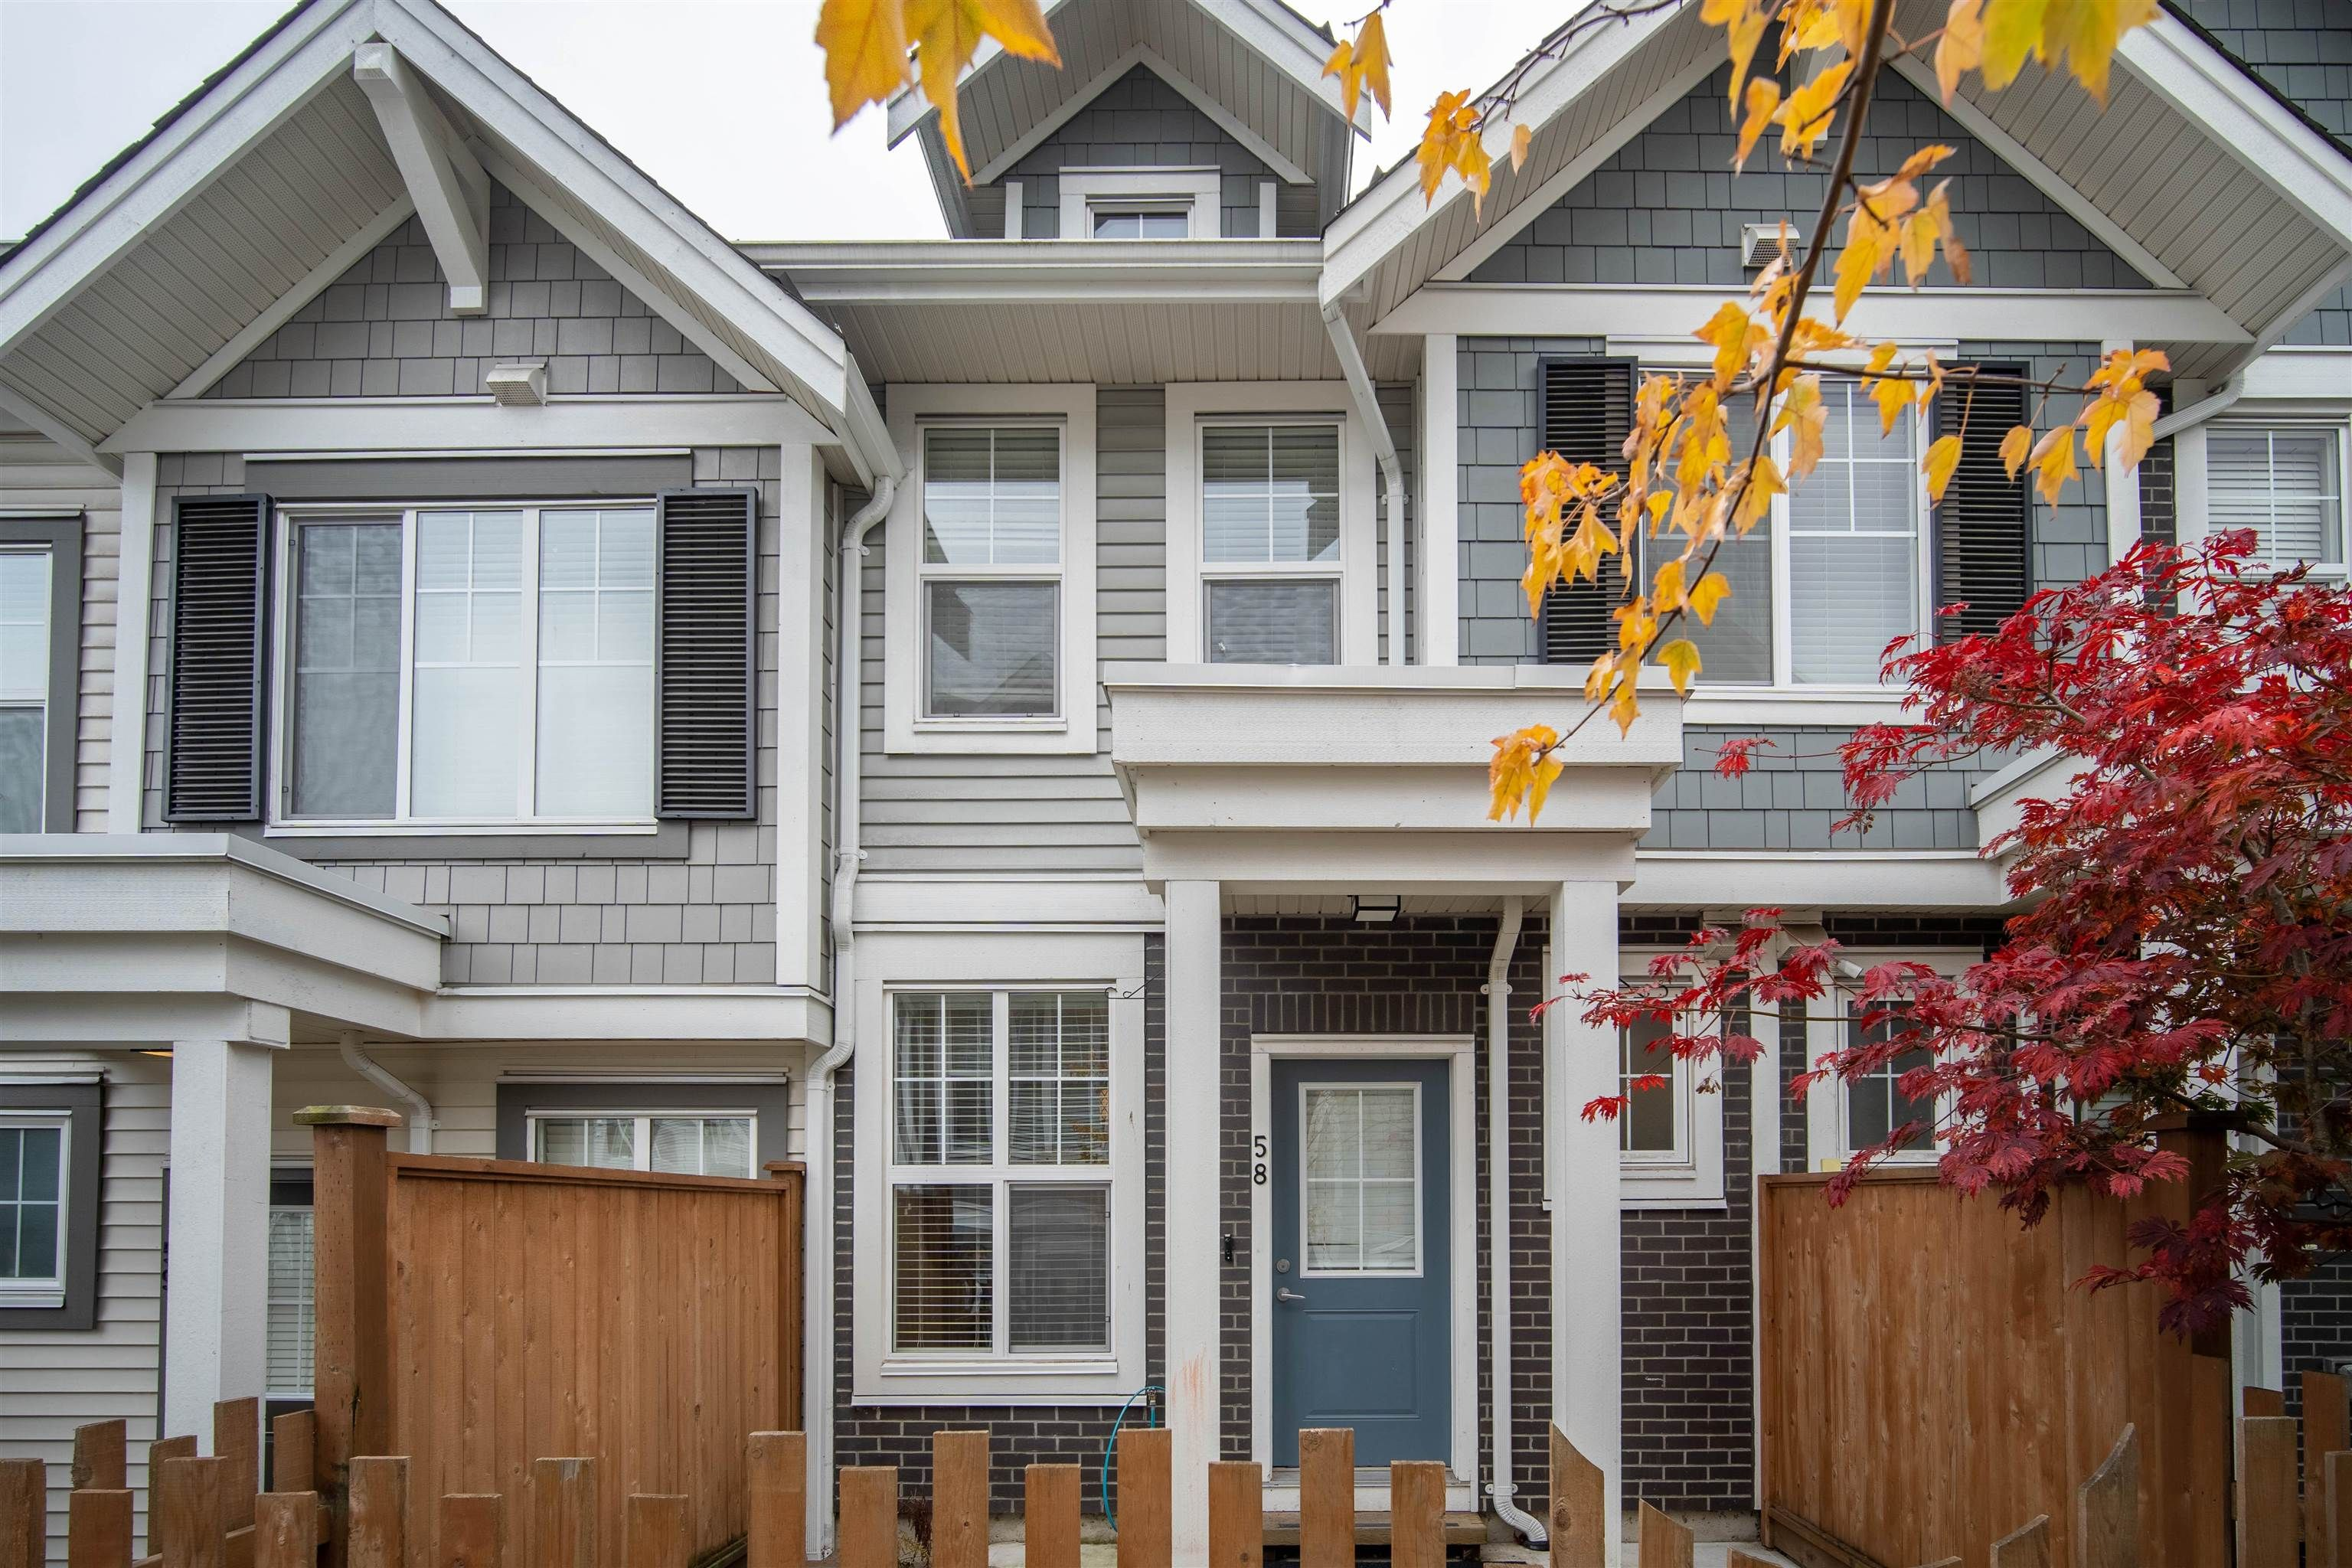 """Main Photo: 58 7169 208A Street in Langley: Willoughby Heights Townhouse for sale in """"Lattice"""" : MLS®# R2623740"""